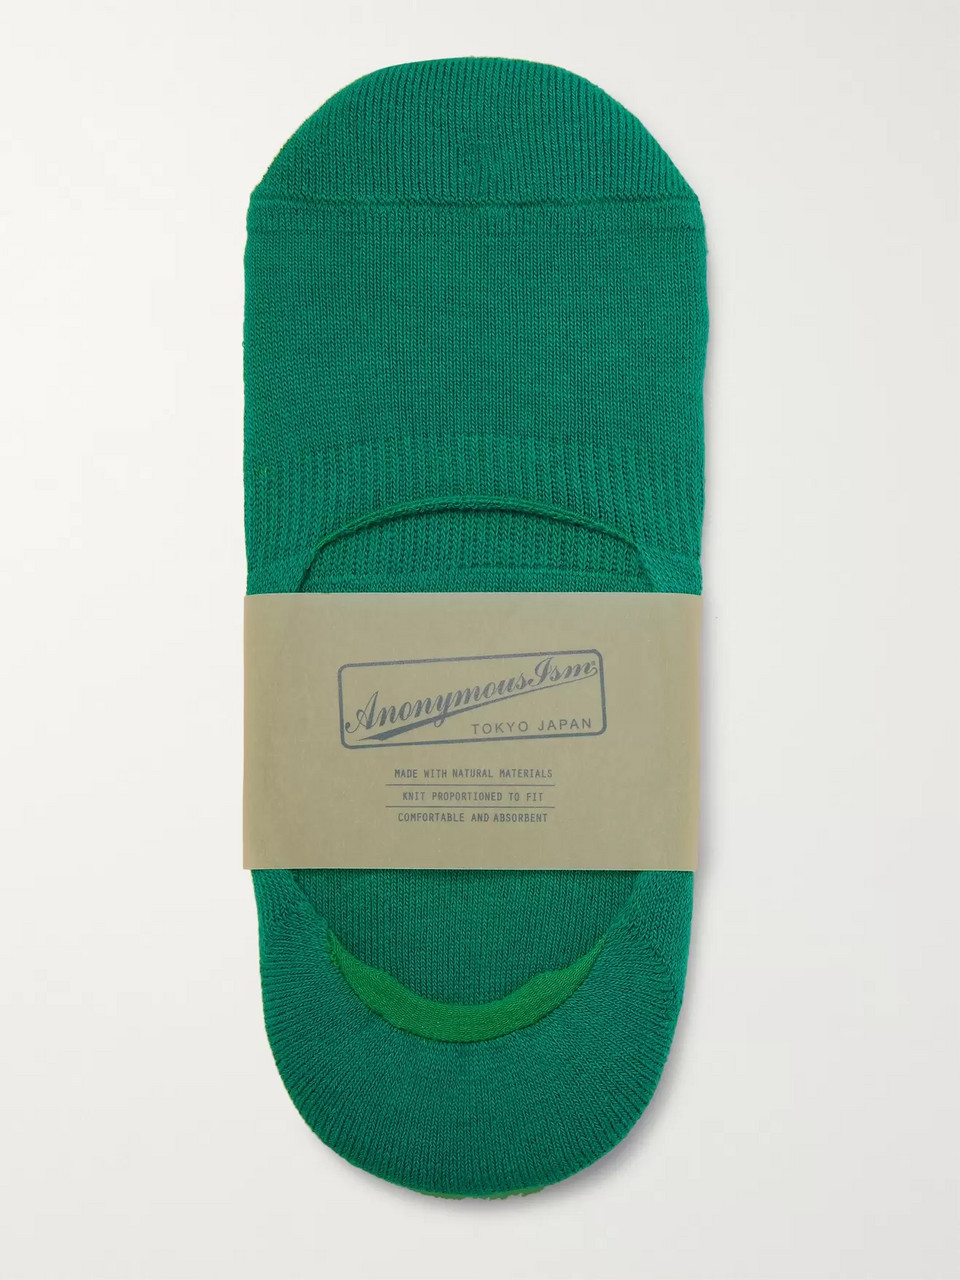 Anonymous Ism Cotton-Blend No-Show Socks